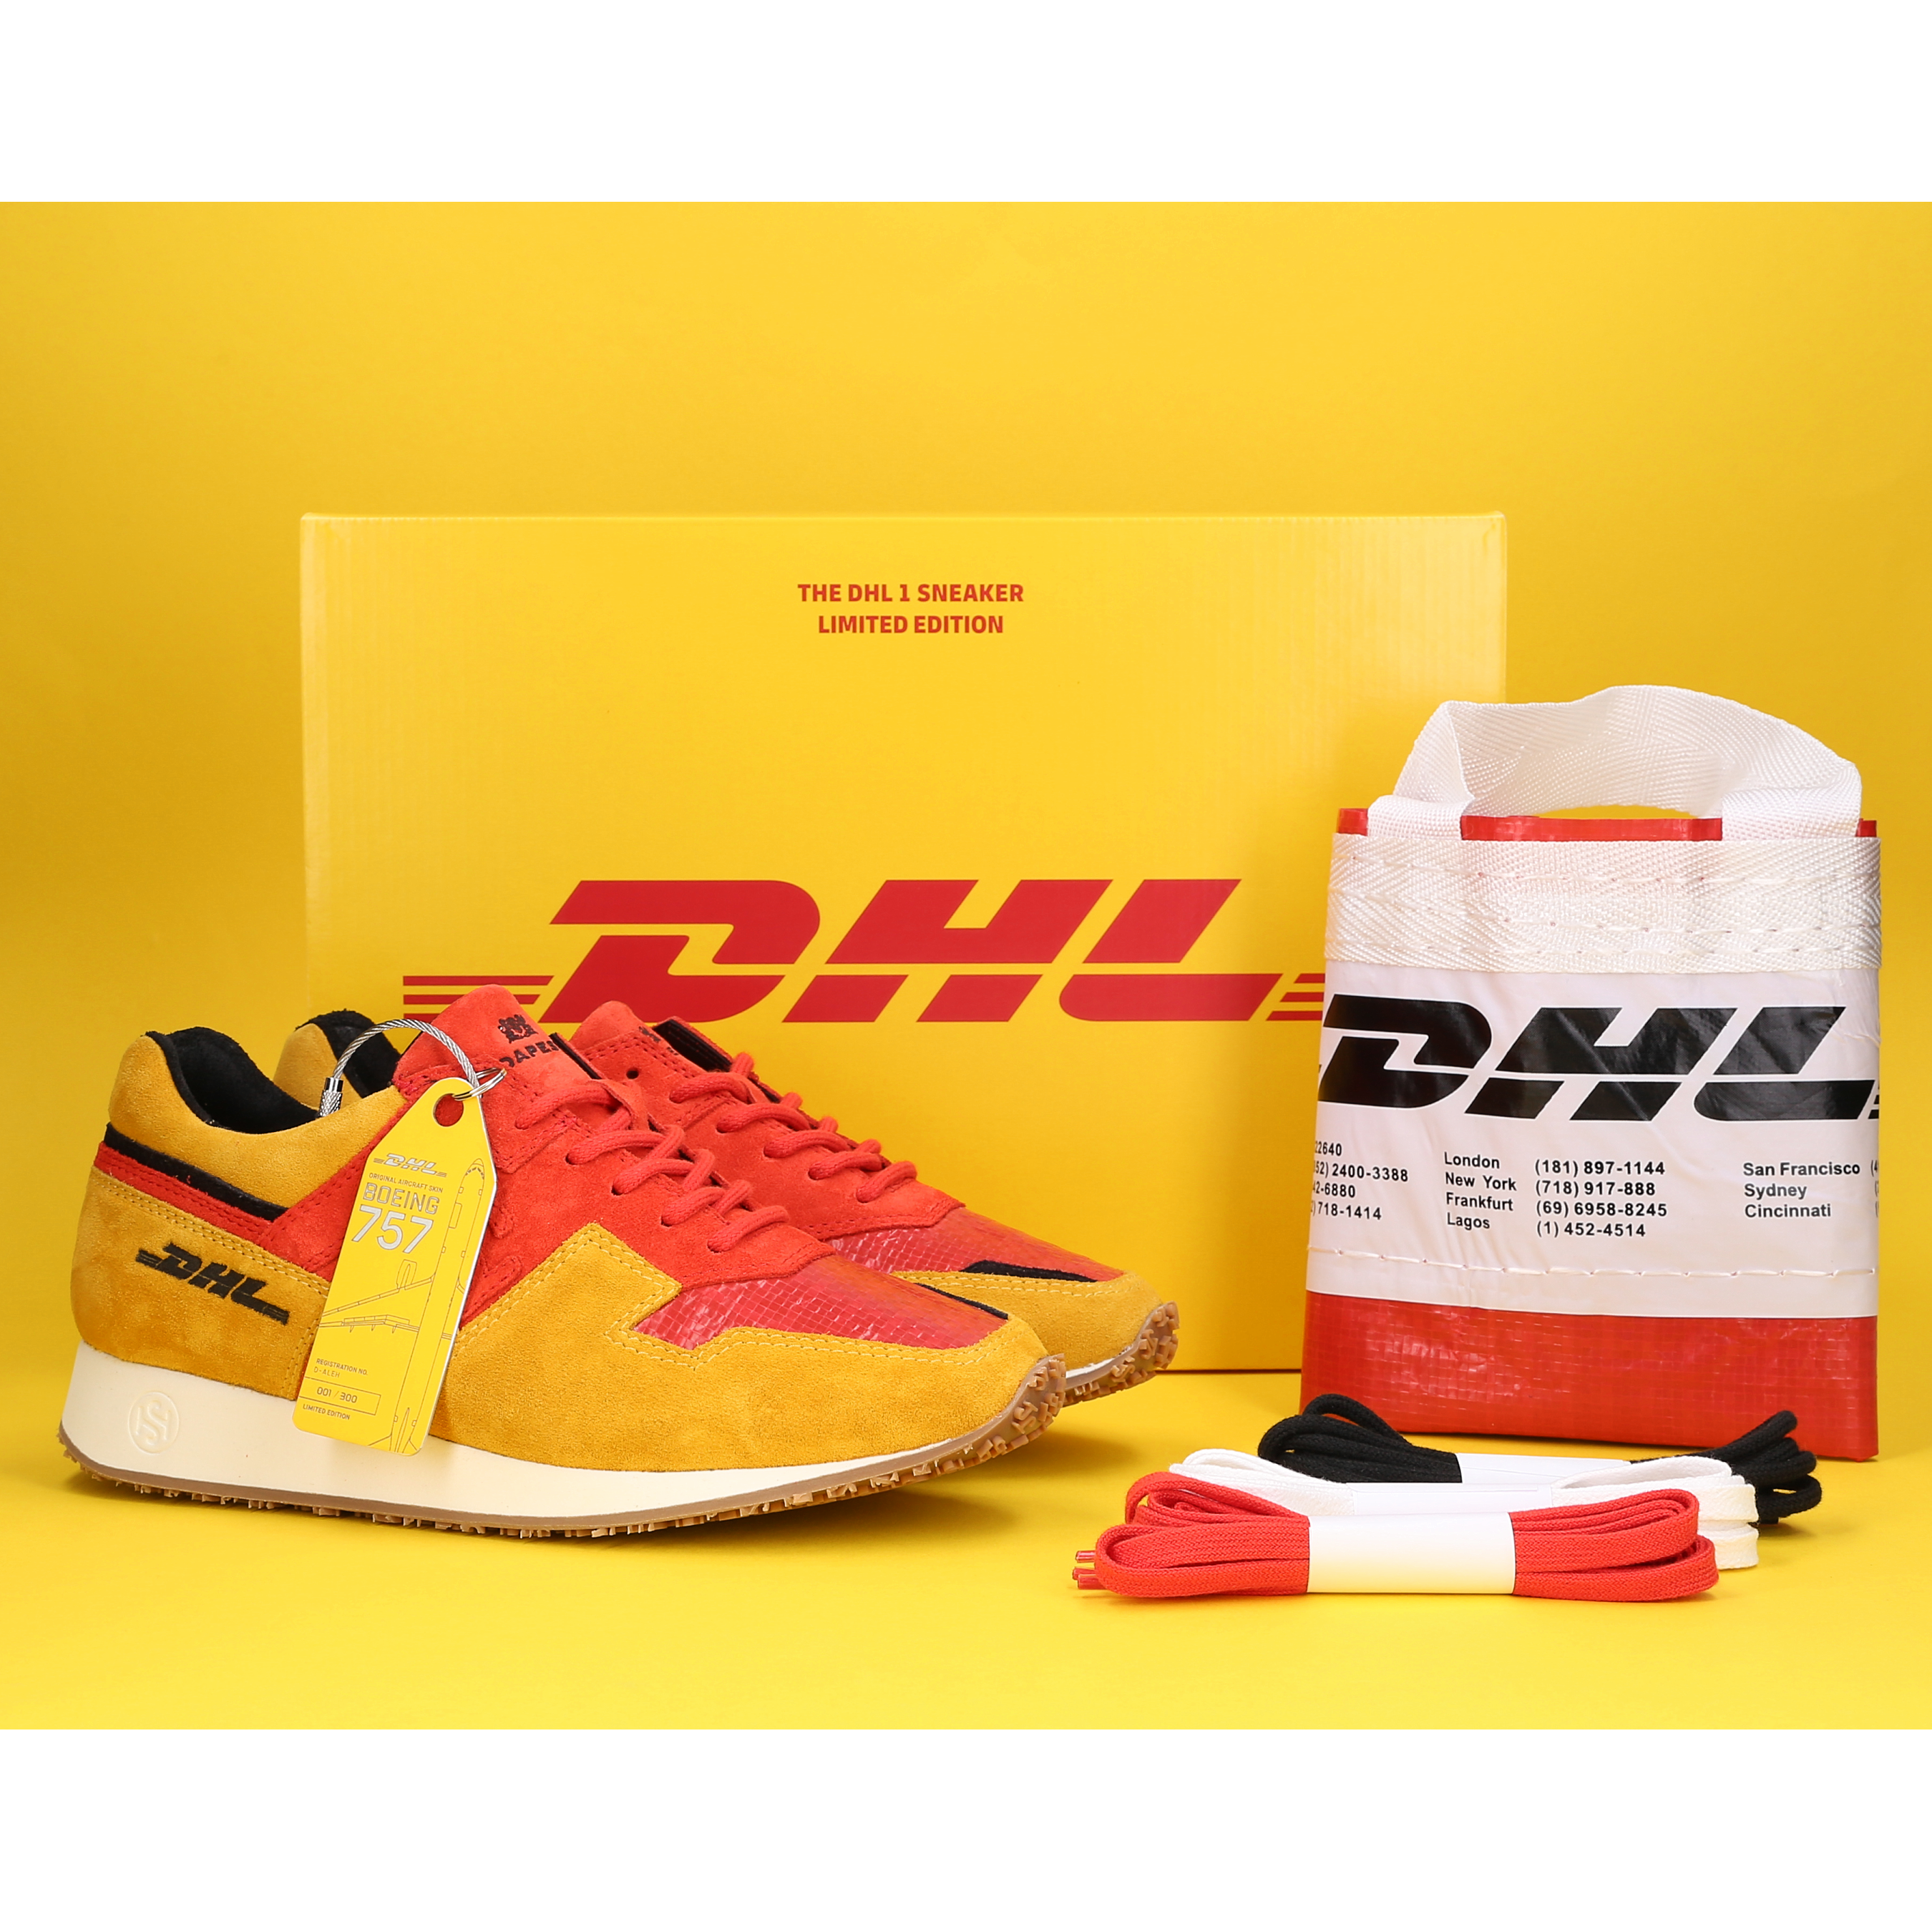 DHL auctions one-of-a-kind sneaker autographed by Bryan Adams - Brand Spur